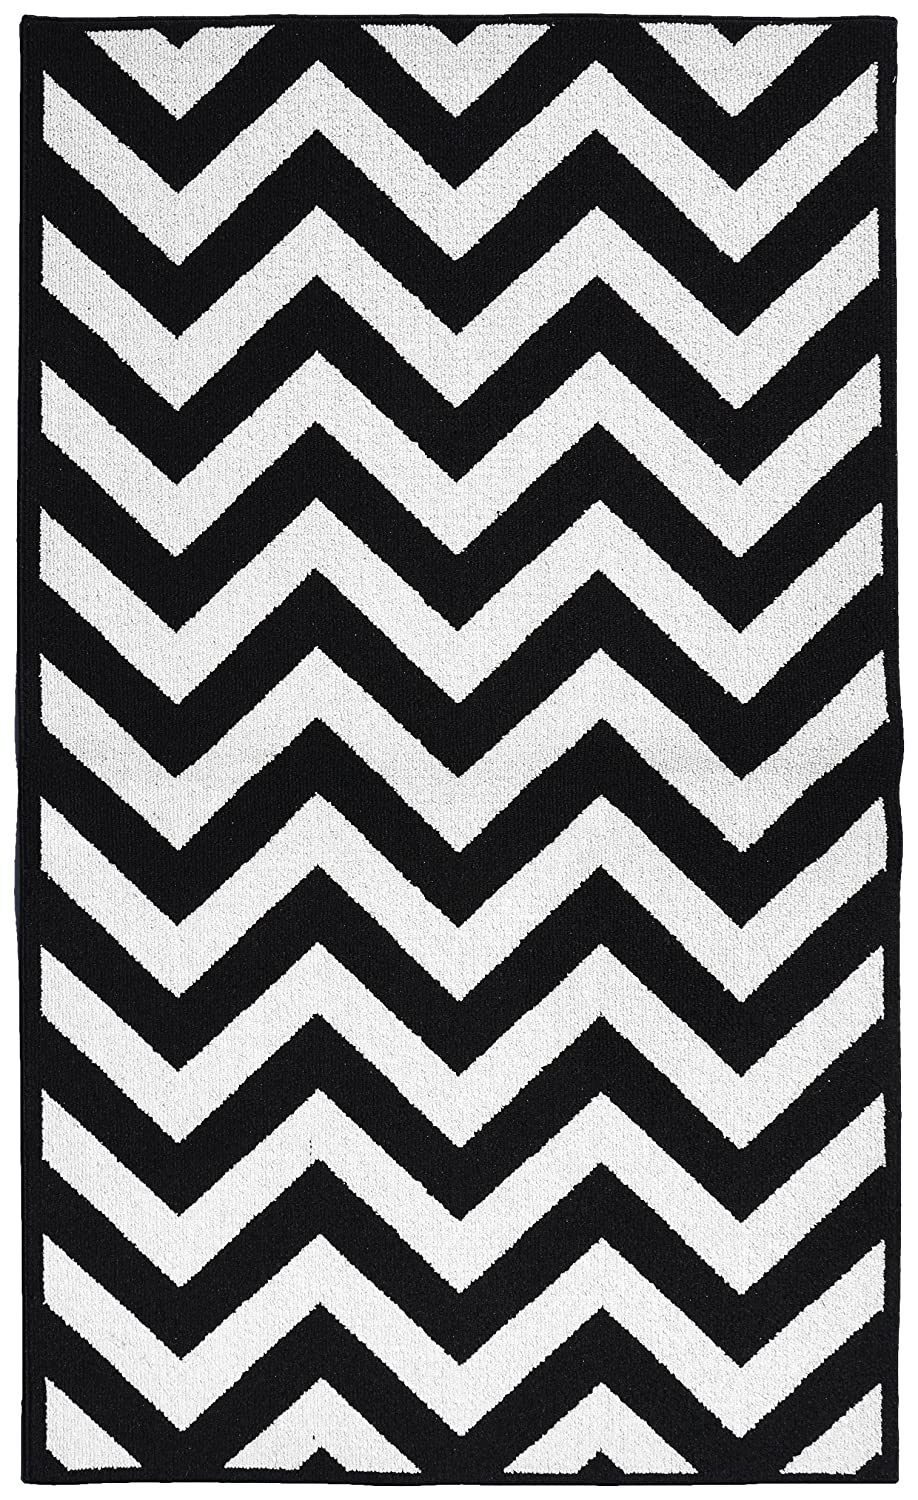 amazoncom garland rug chevron area rug  by feet large . amazoncom garland rug chevron area rug  by feet large blackwhitekitchen  dining